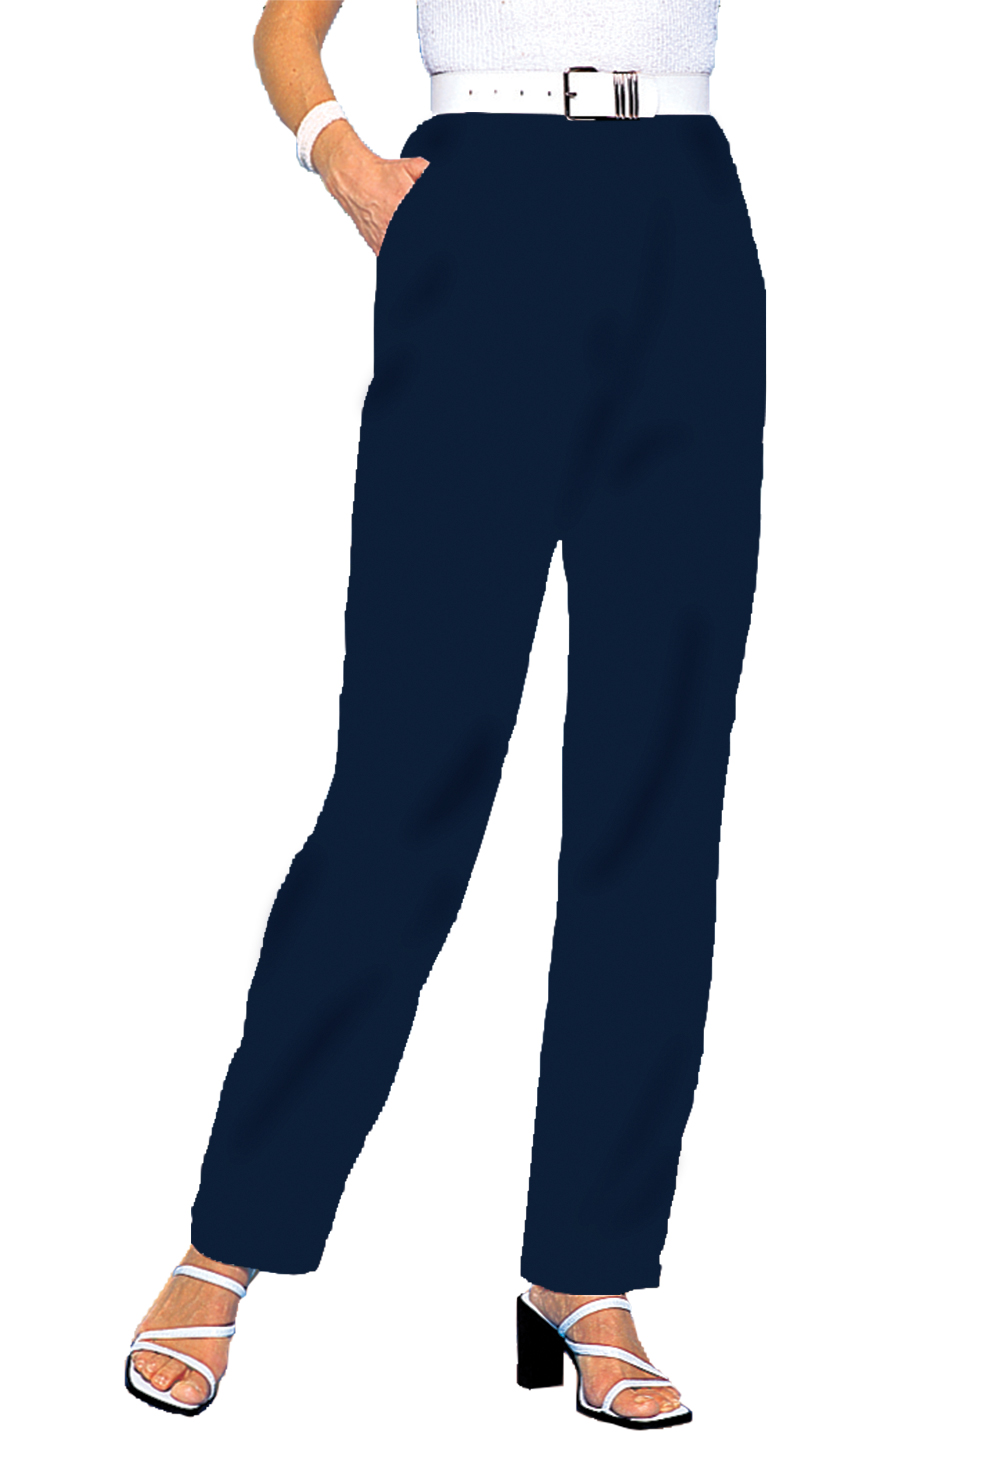 Pantalon large uni, 2 statures